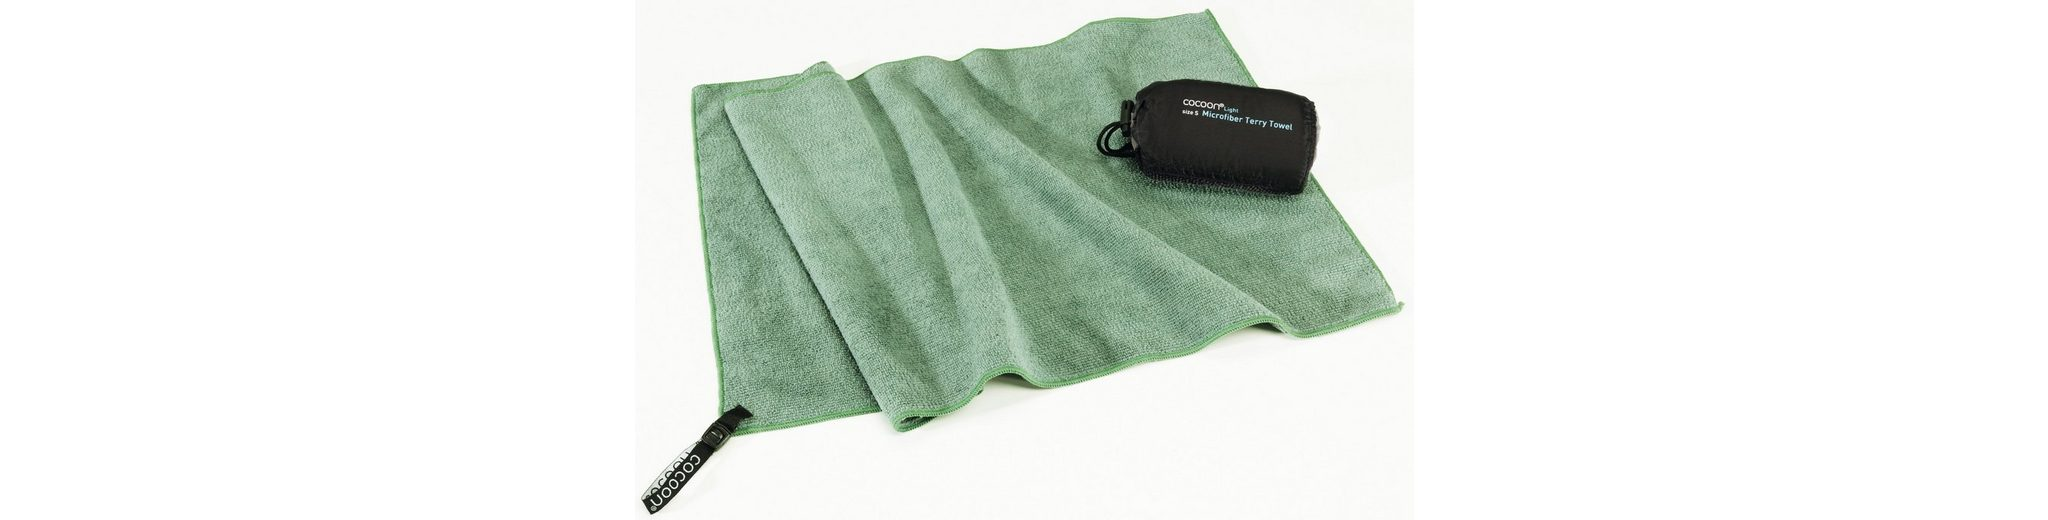 Cocoon Reisehandtuch »Microfiber Terry Towel Light Large«